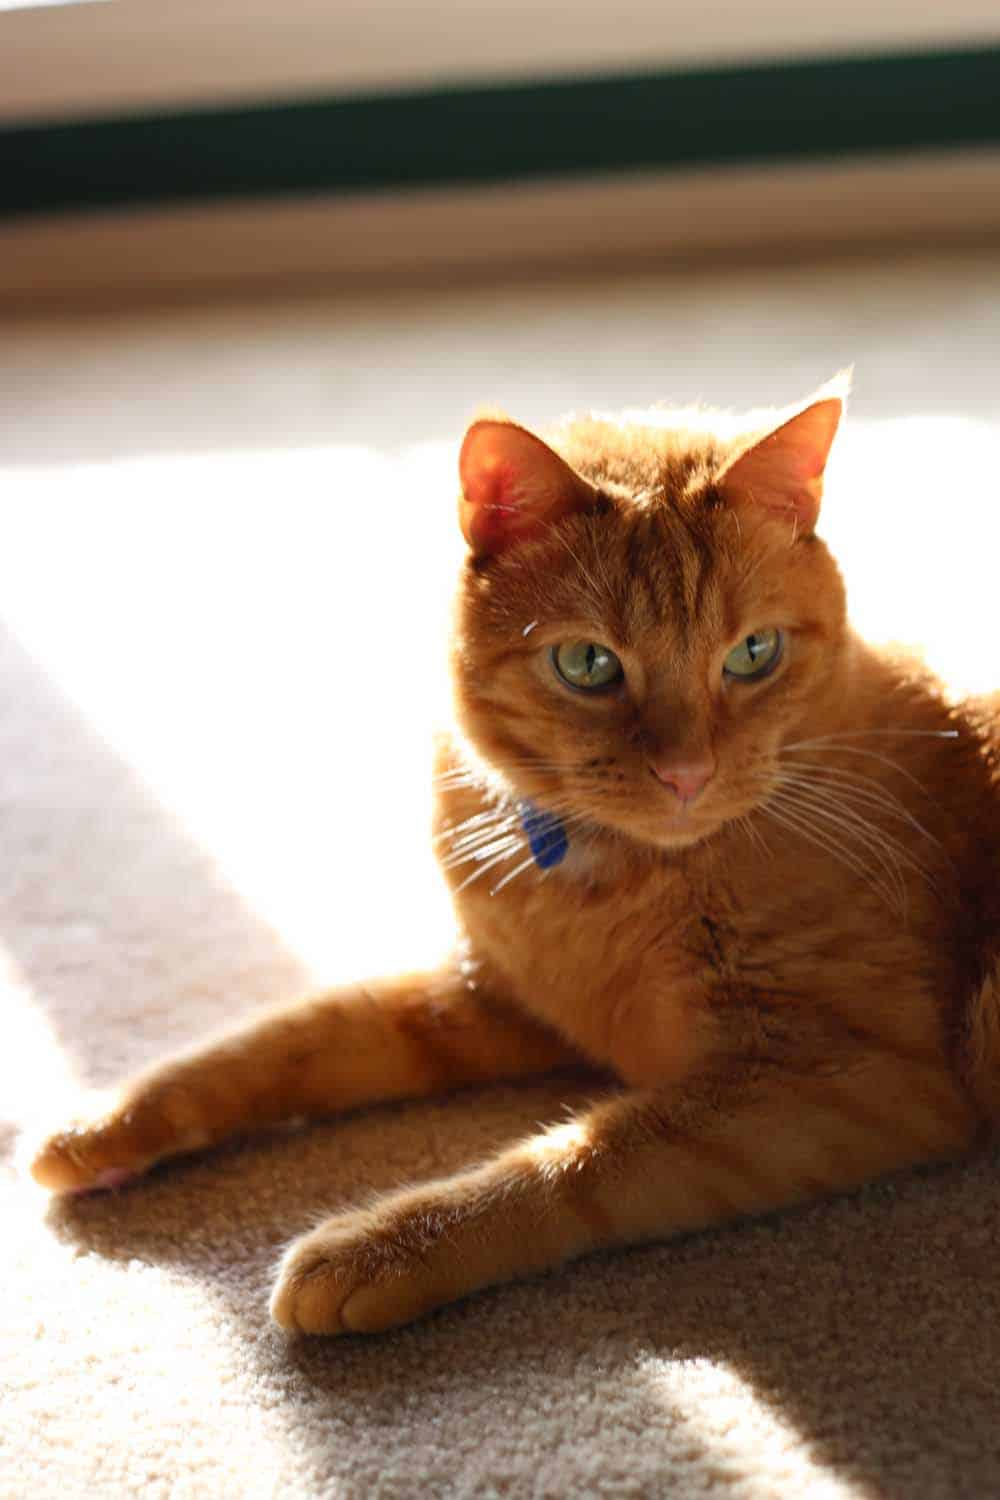 Oscar in a sunbeam